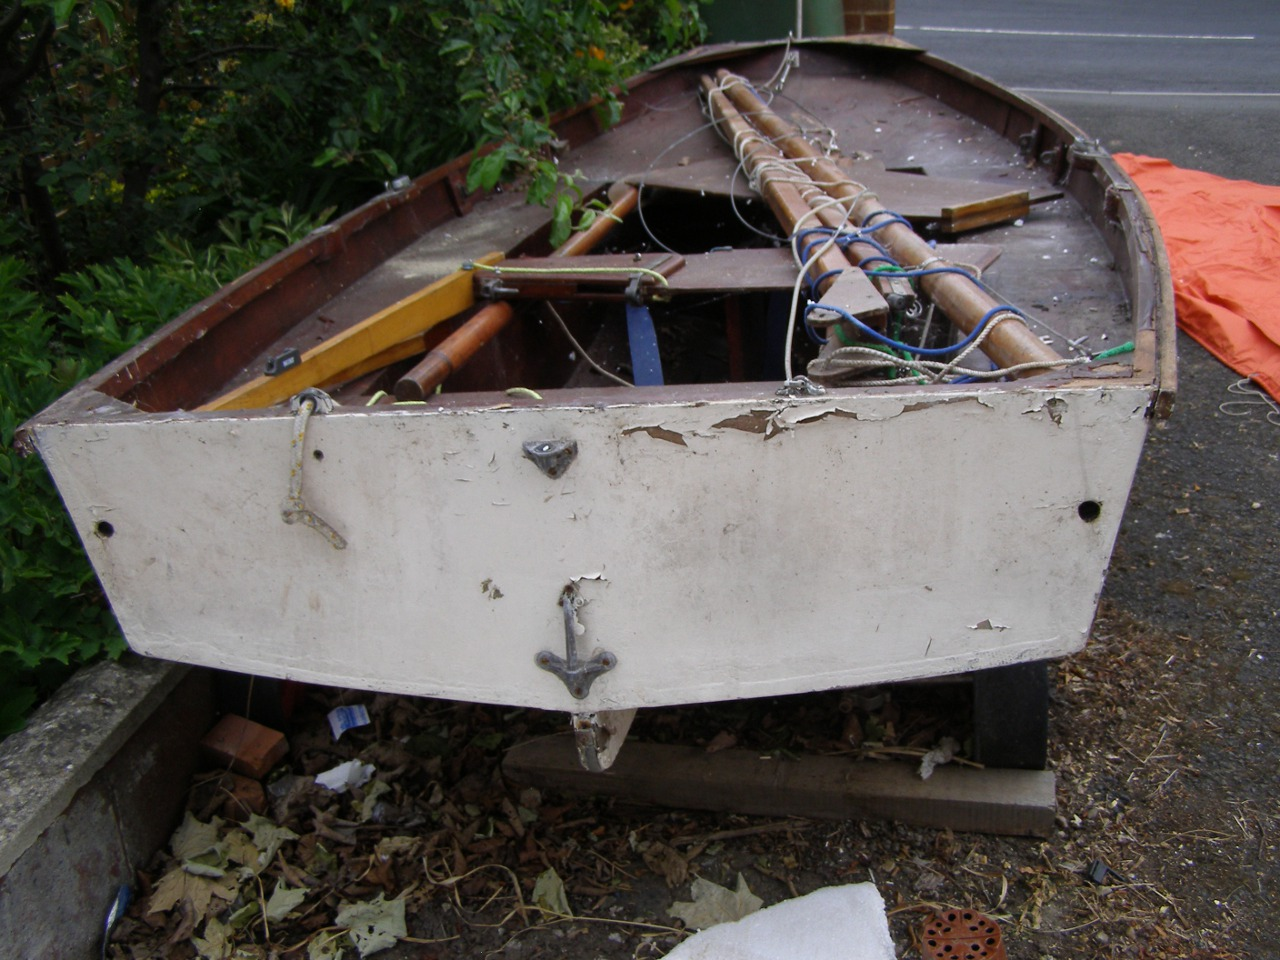 A white wooden Mirror dinghy in terrible condition with paint and varnish peeling